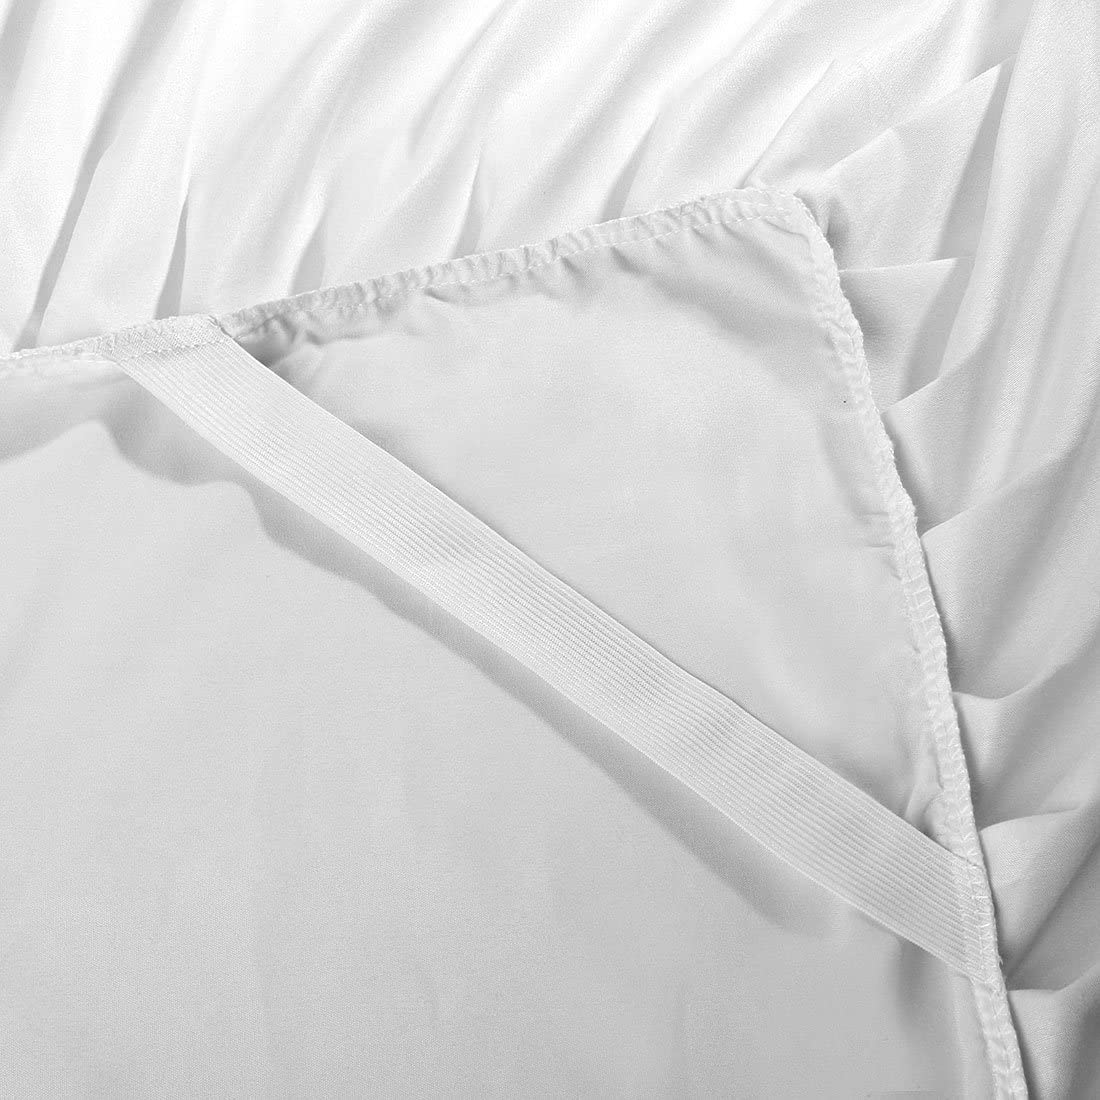 uxcell Bed Skirt Brushed Polyester Pleated Styling with 14 Inch Drop Beige Full Size